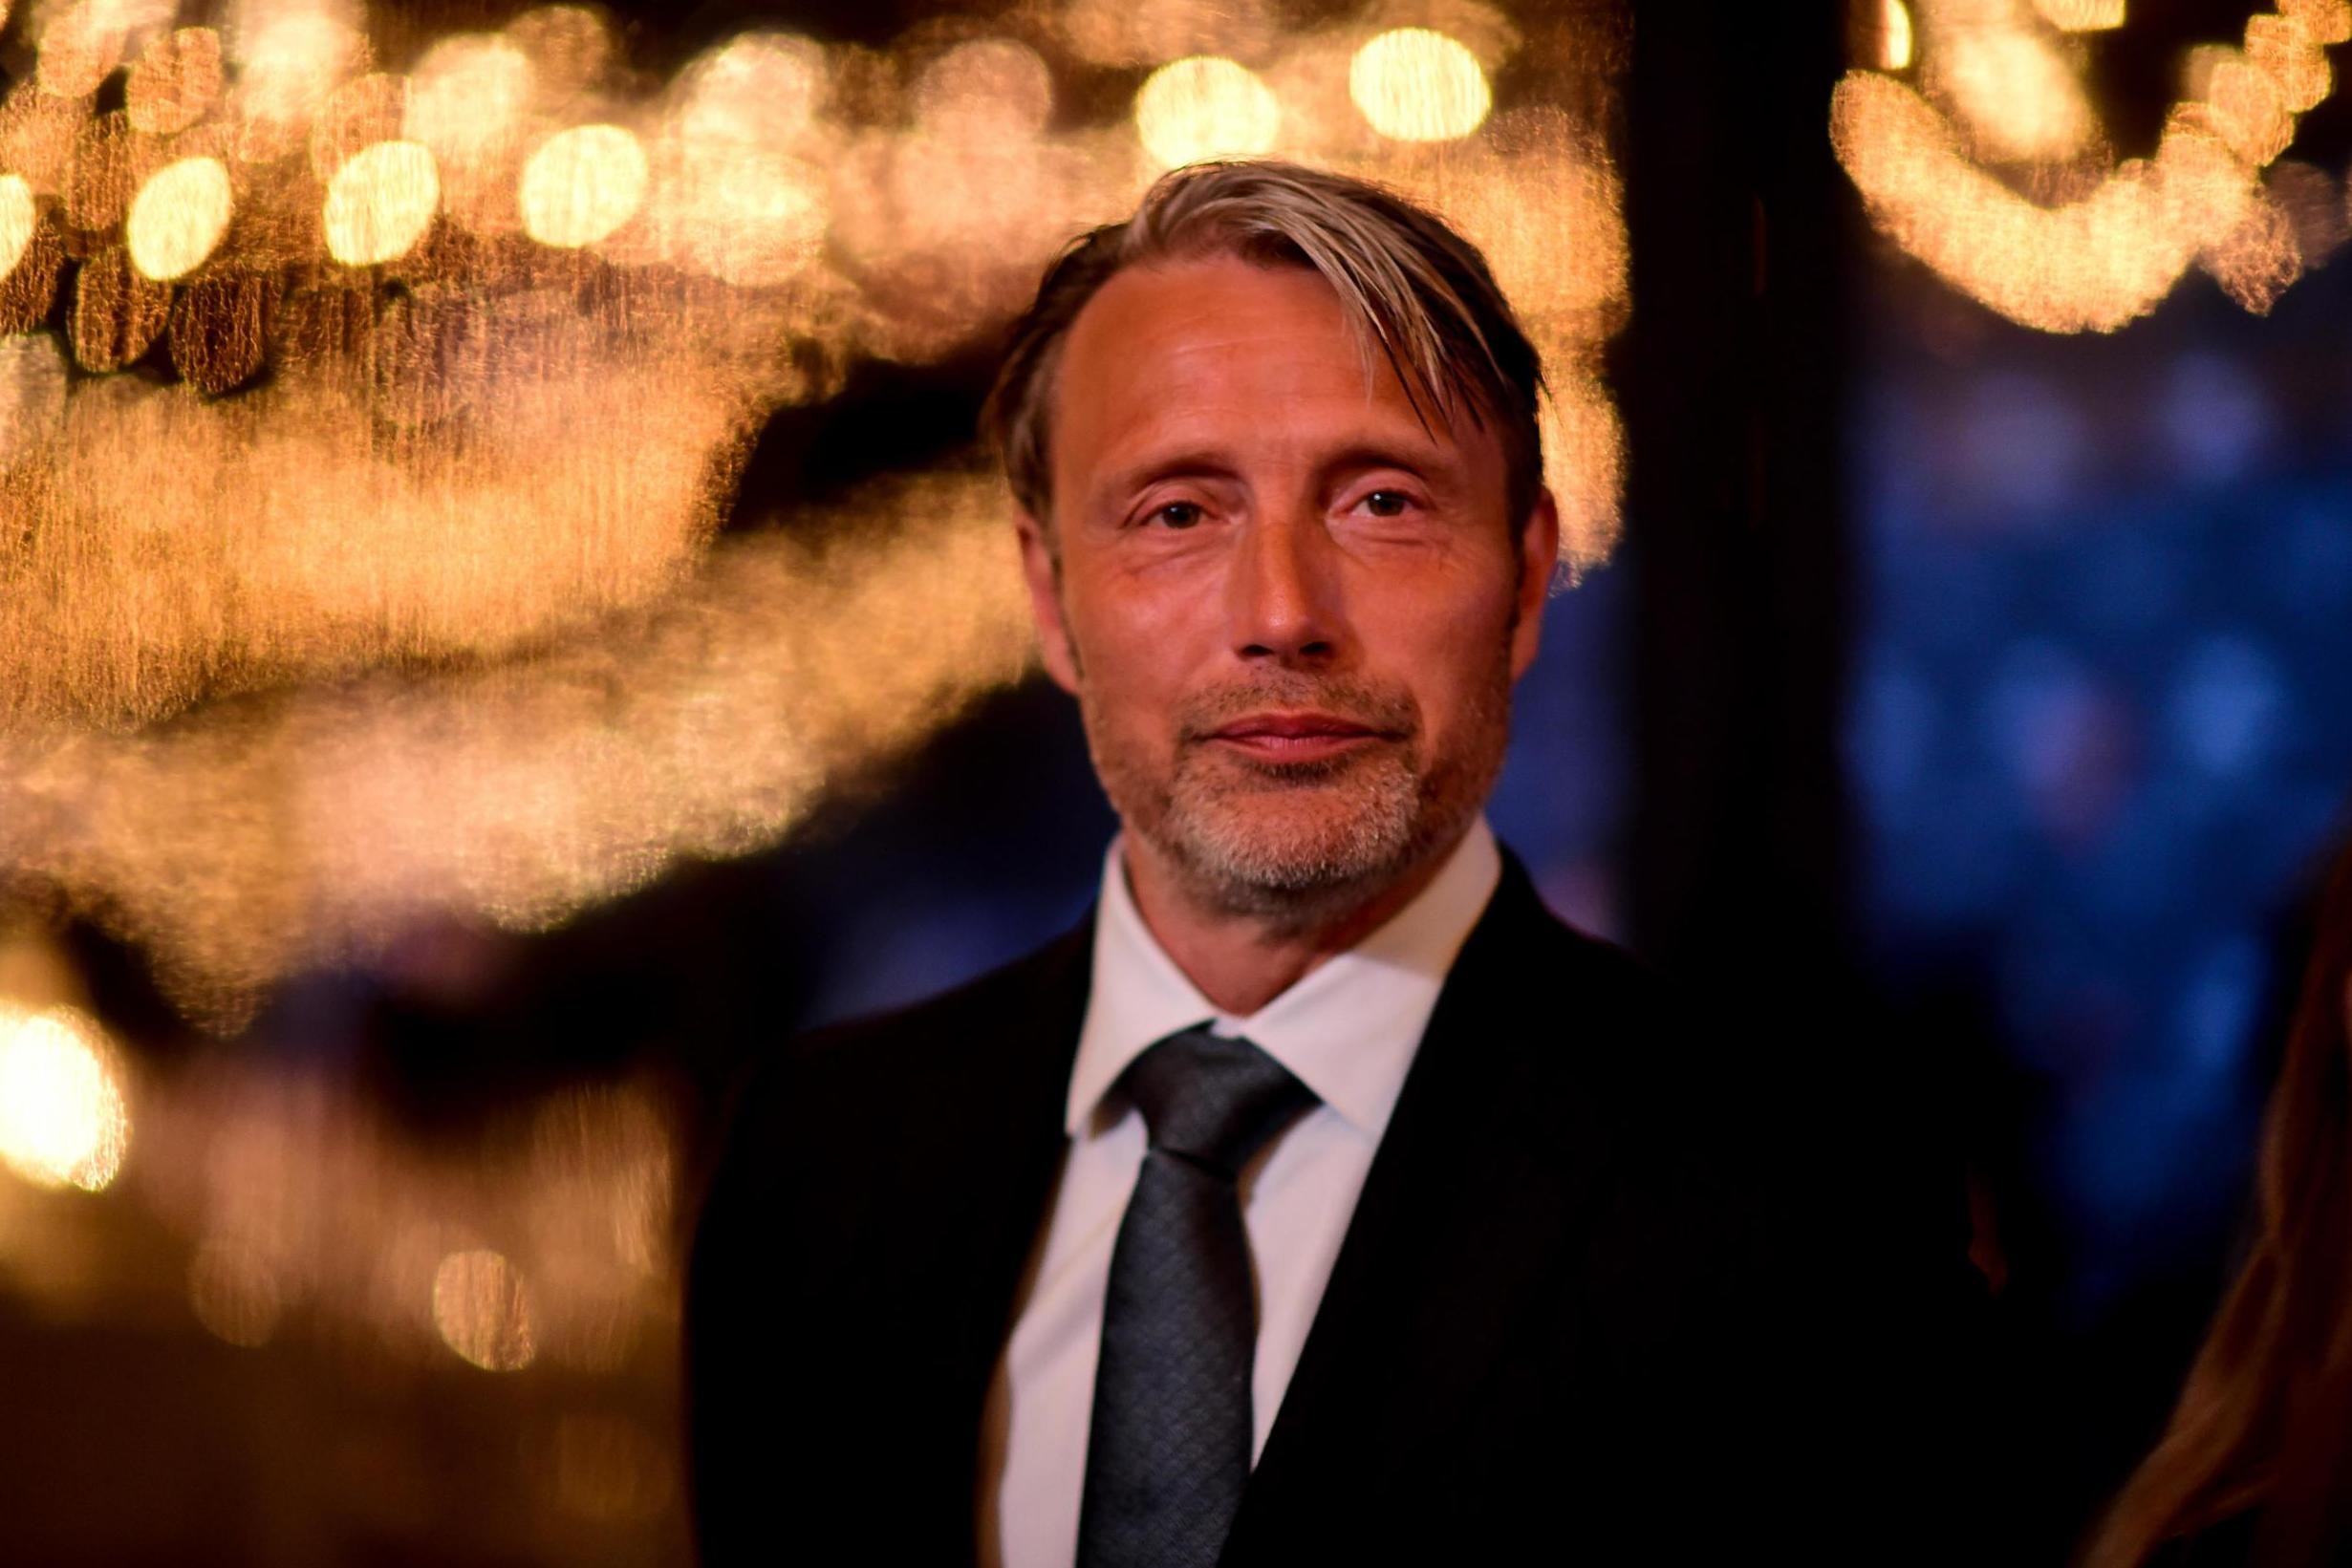 Mads Mikkelsen interview: 'I spent so much time alone, I was going crazy'